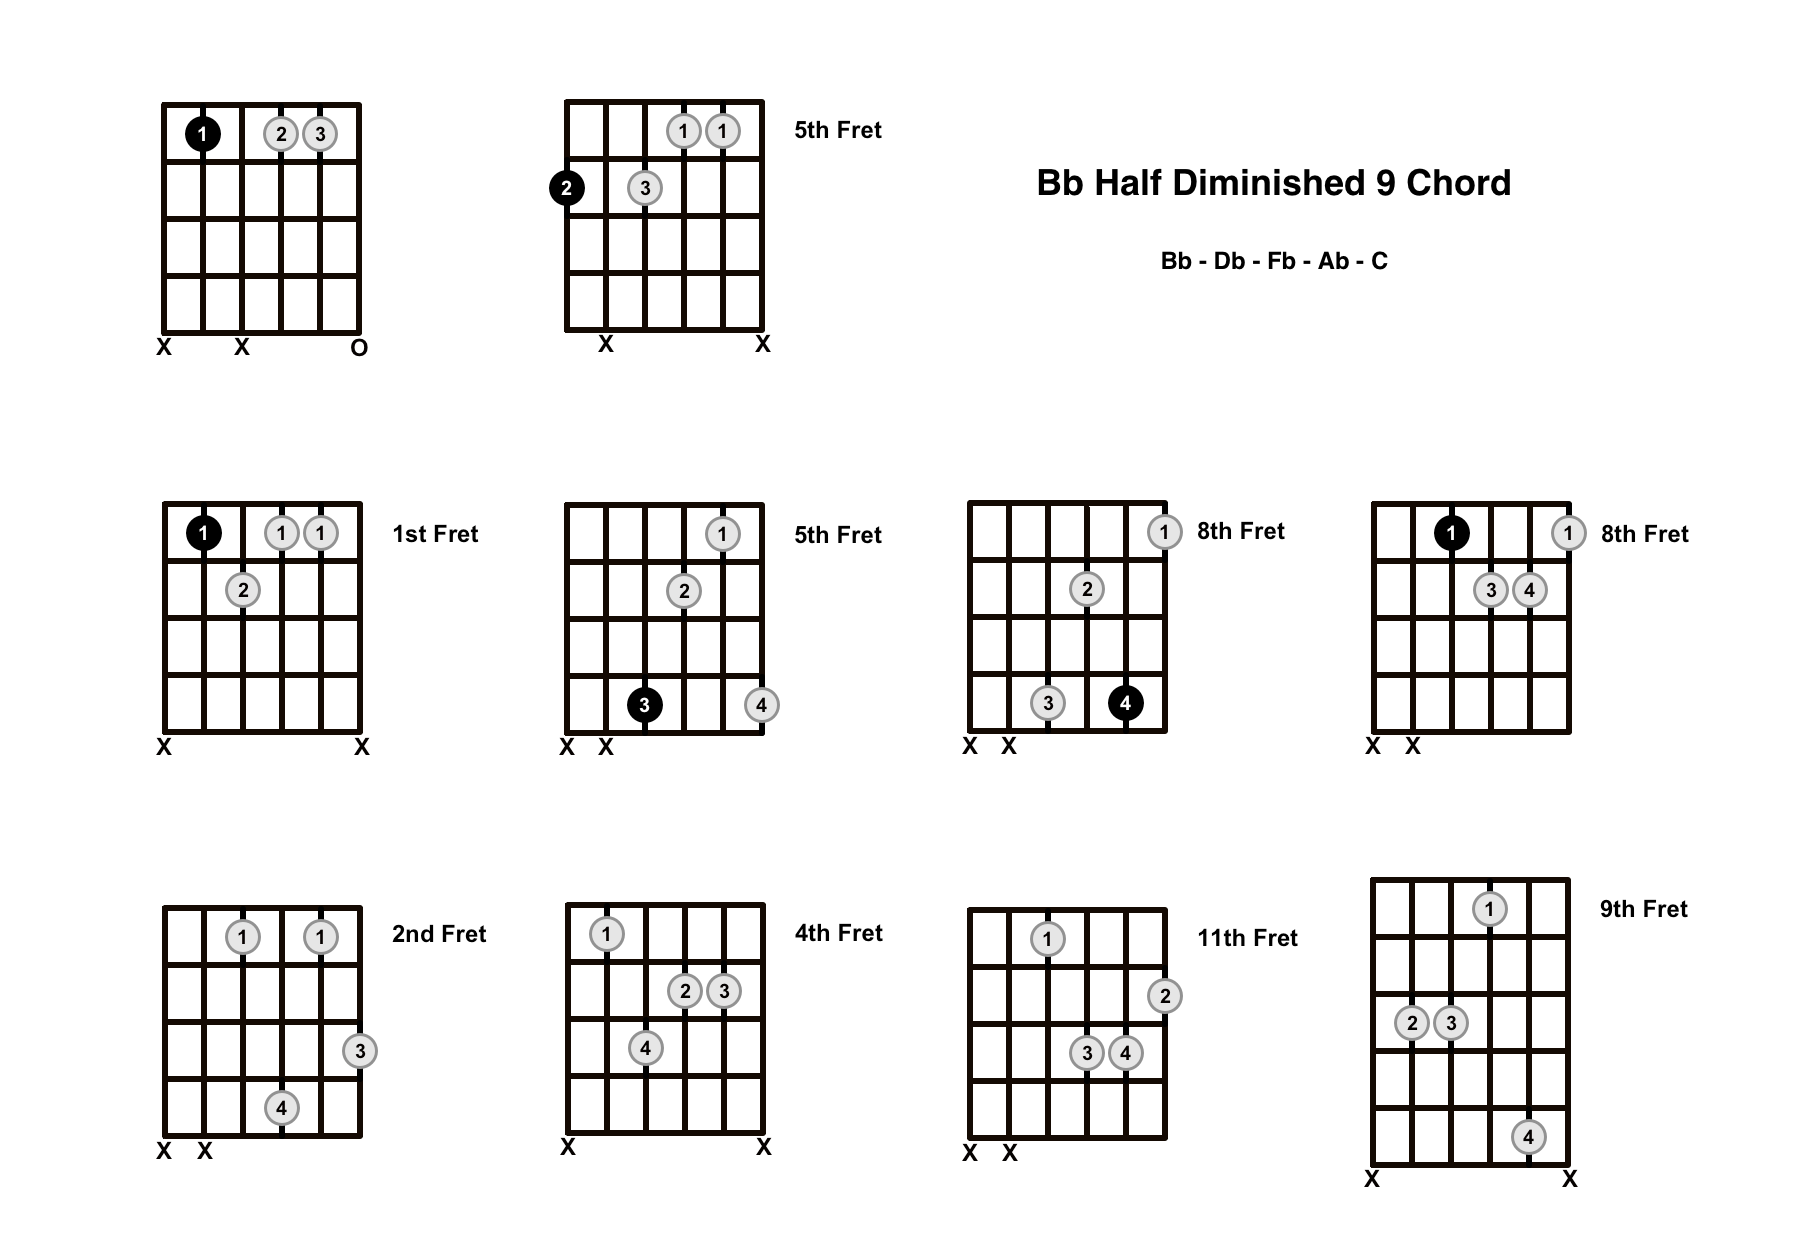 Bbm9b5 Chord On The Guitar (B Flat Half Diminished 9) – Diagrams, Finger Positions and Theory